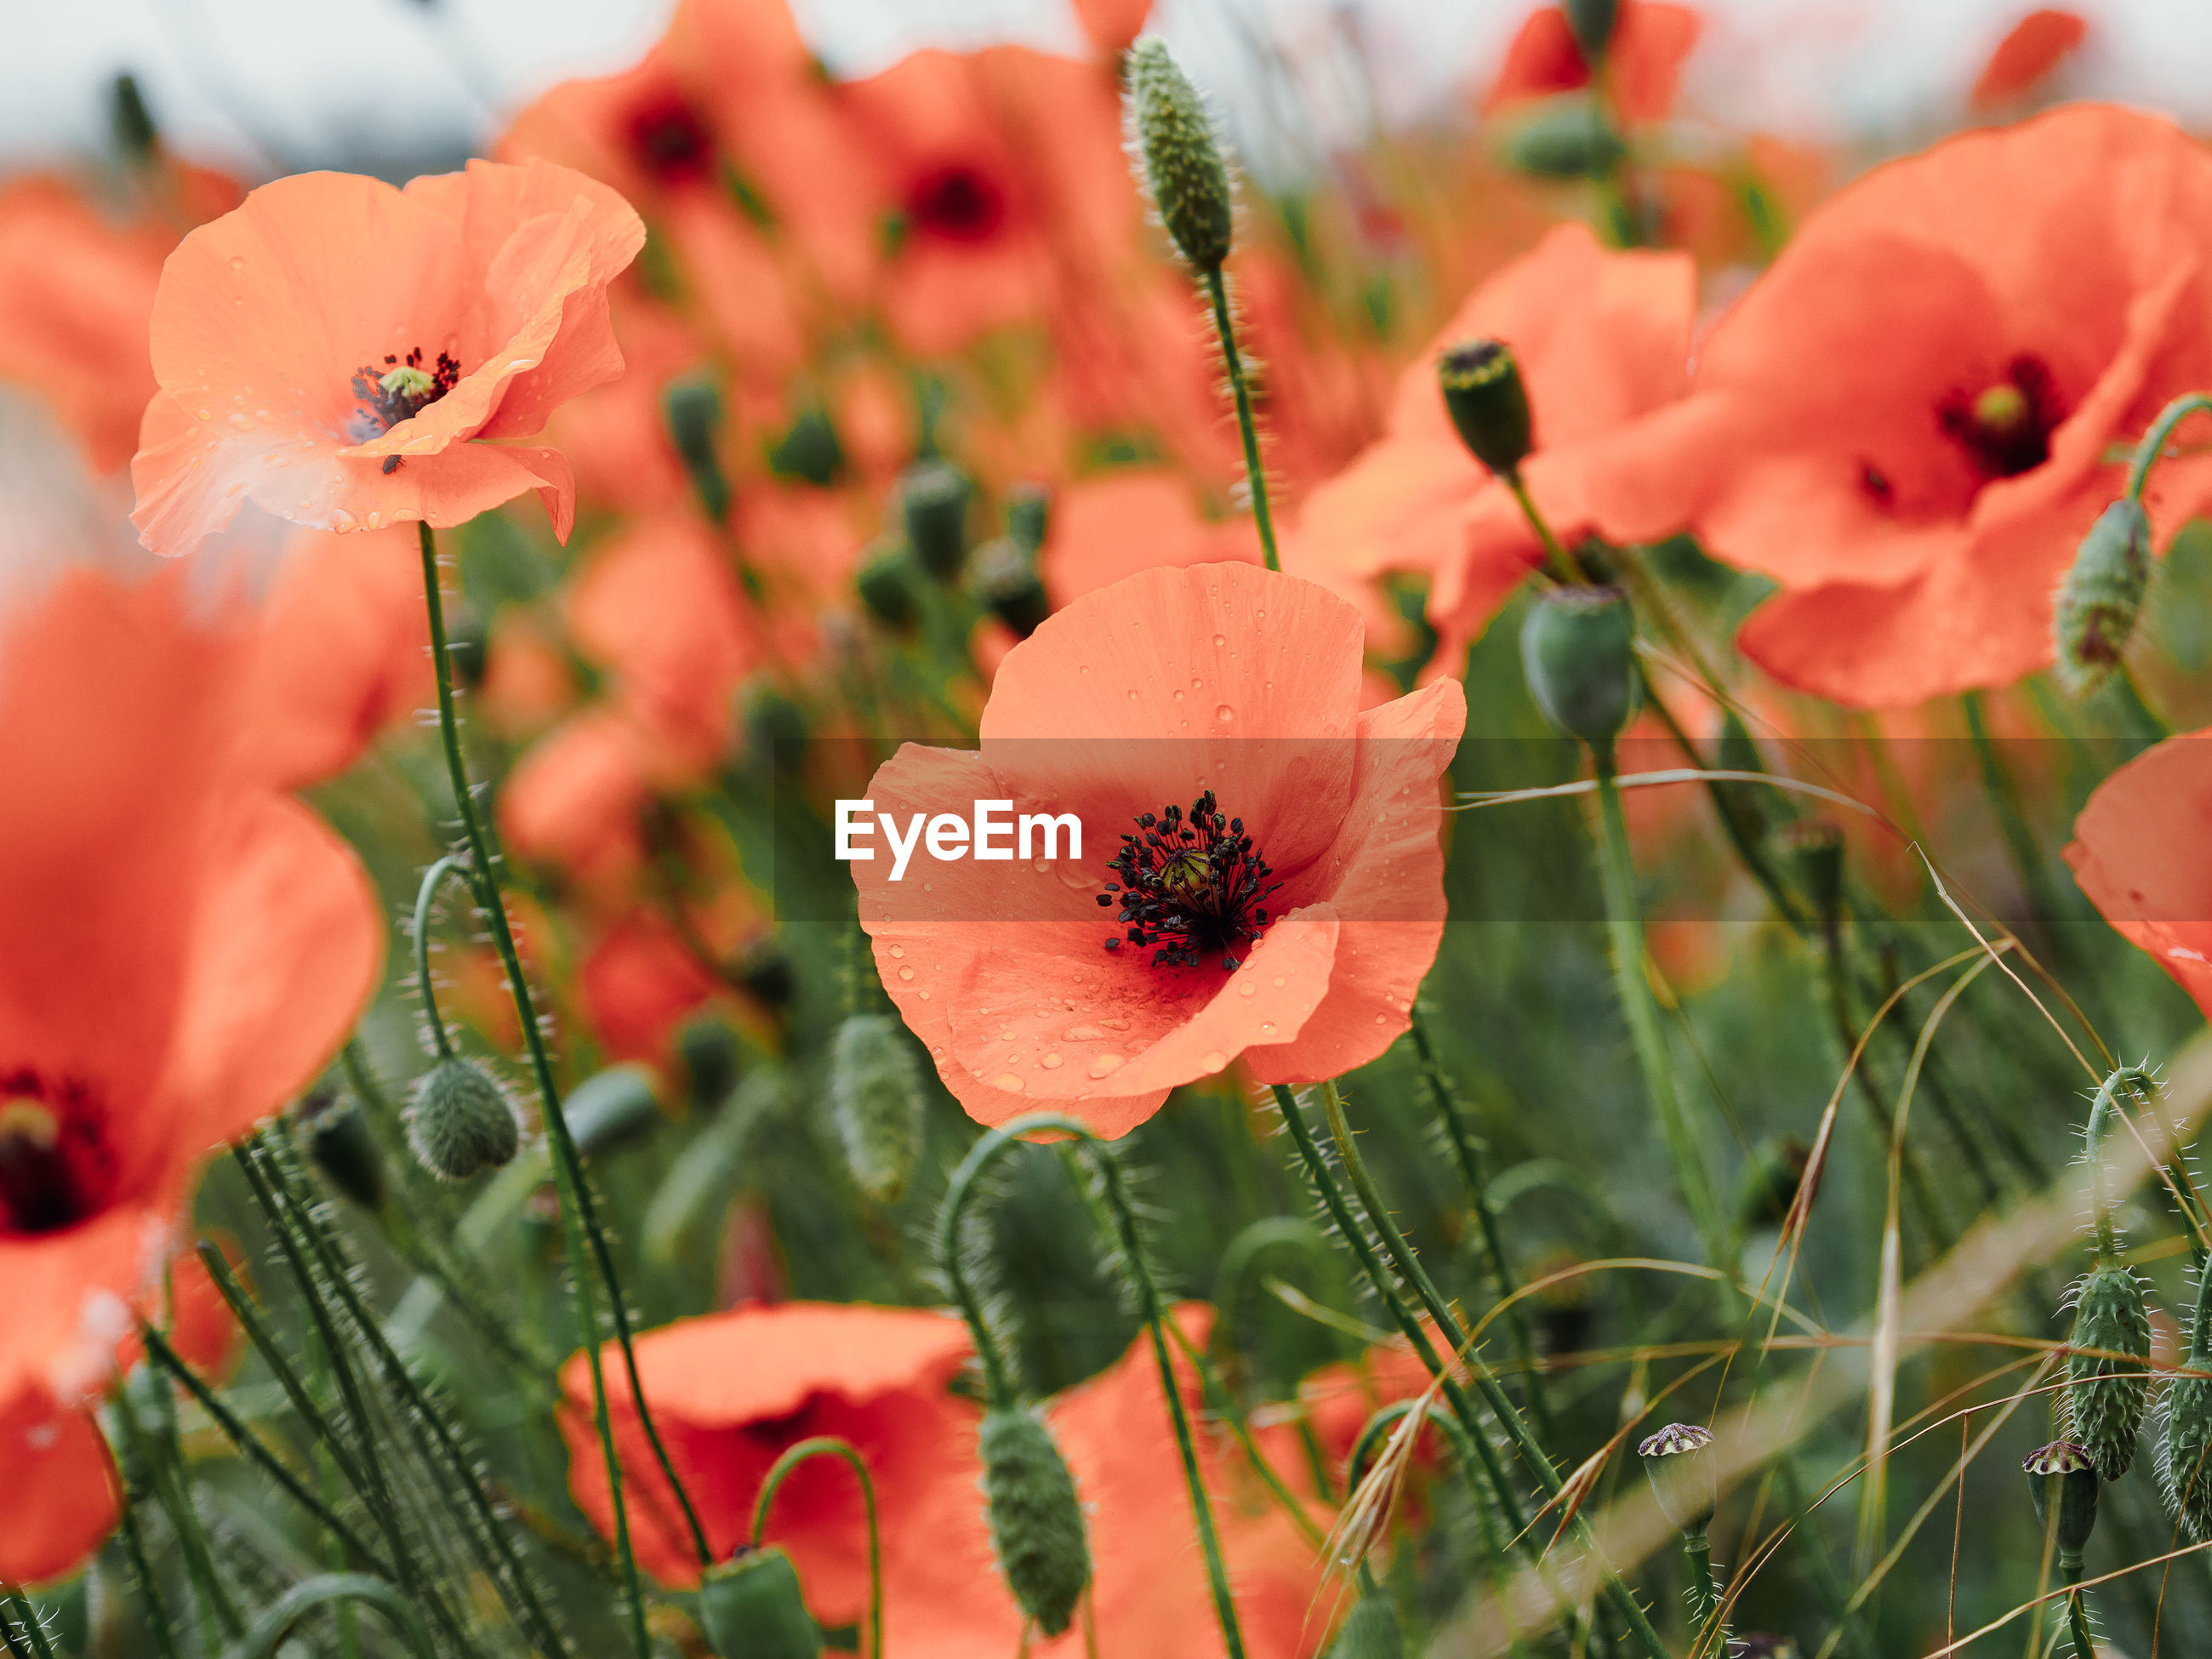 CLOSE-UP OF ORANGE POPPY FLOWERS IN FIELD